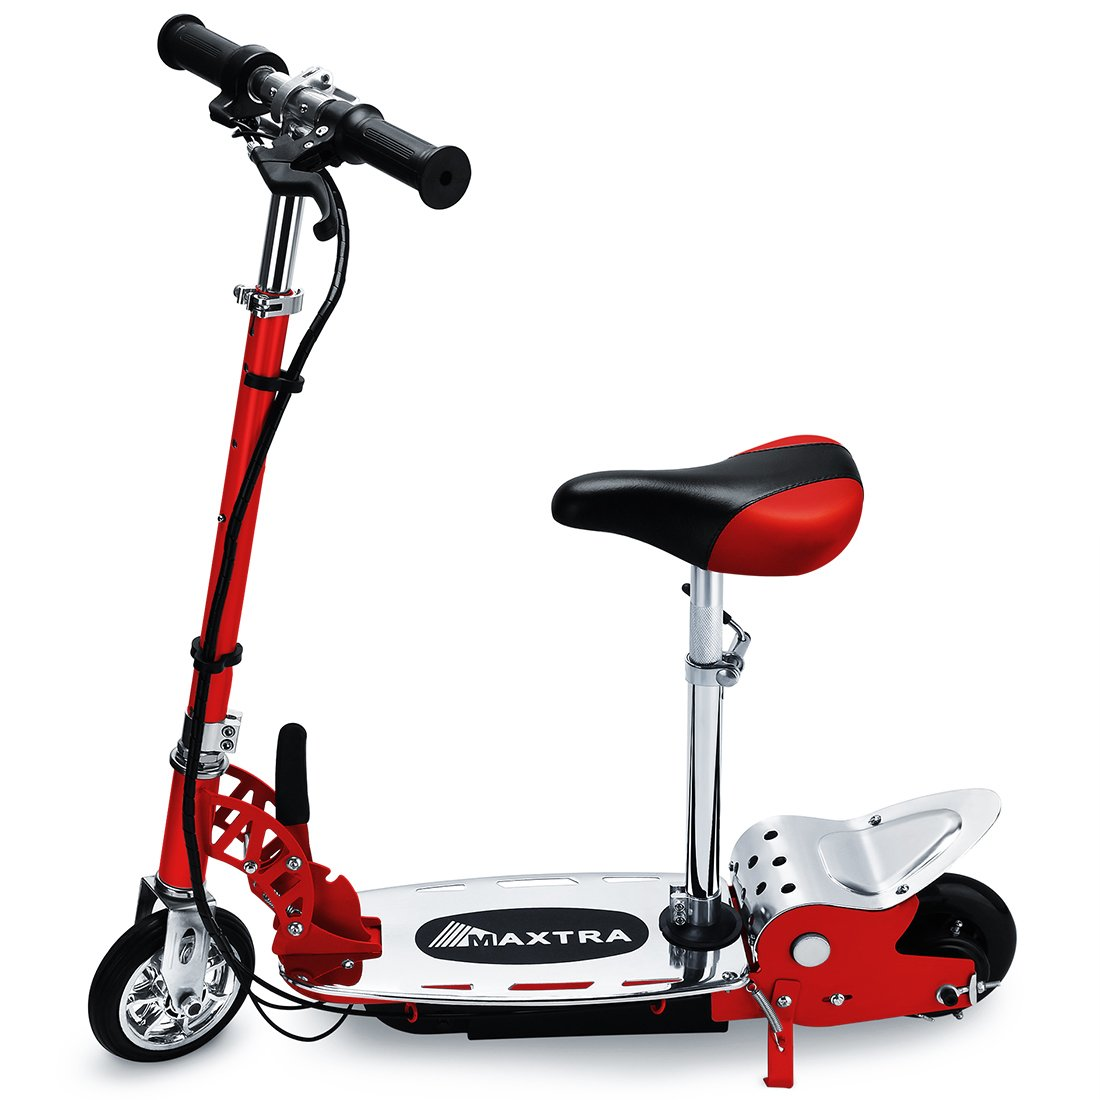 maxtra e120 177lbs max weight capacity electric scooter. Black Bedroom Furniture Sets. Home Design Ideas